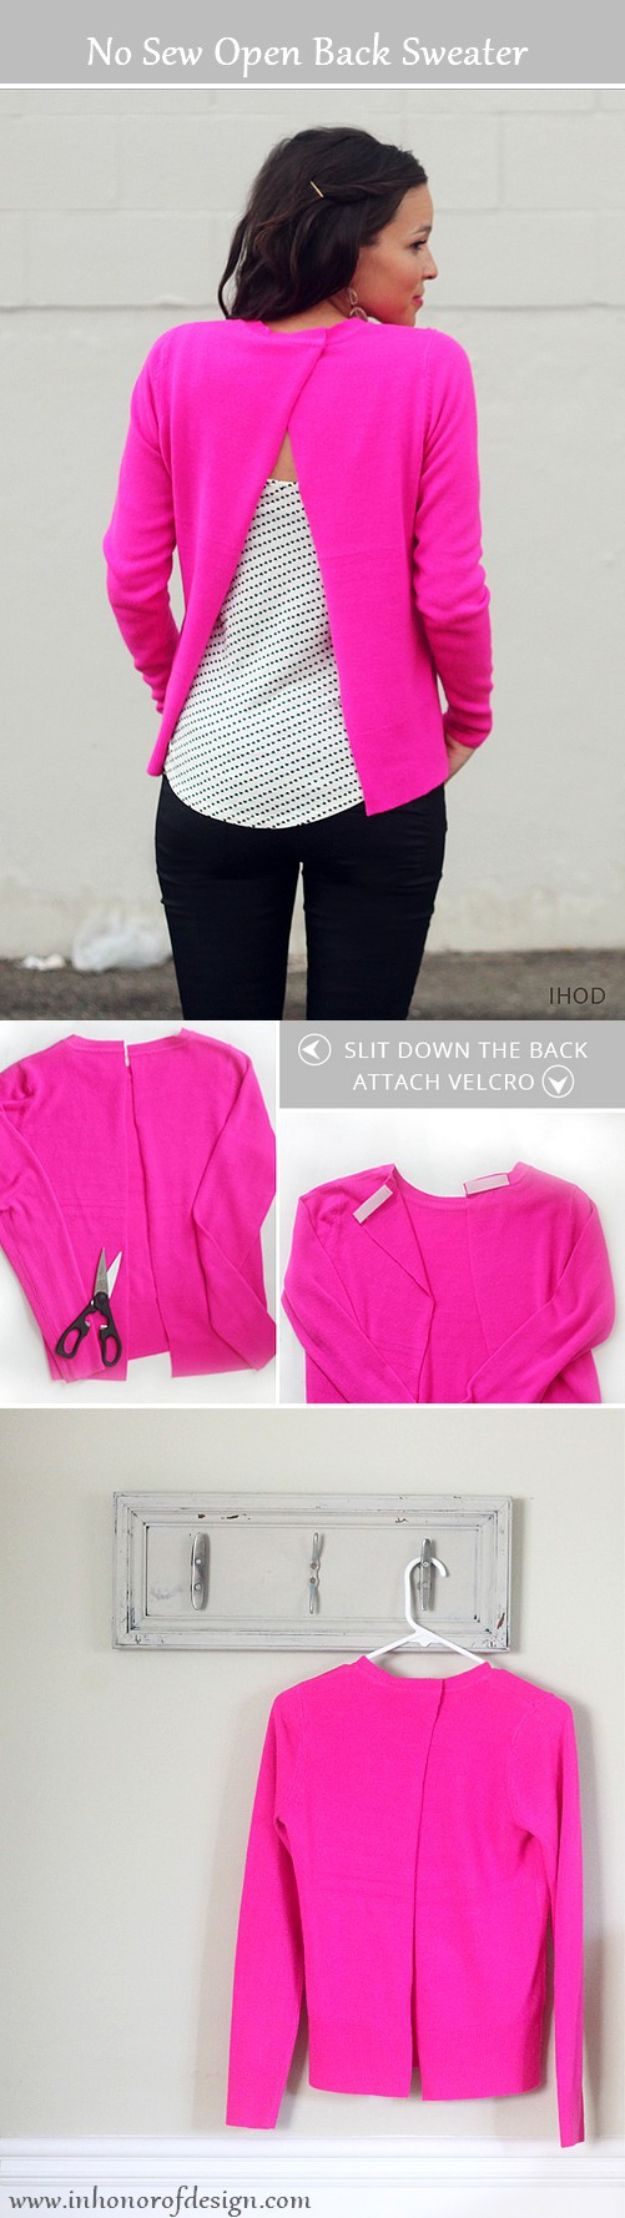 No Sew DIY Fashion Ideas - DIY No-Sew Open Back Sweater - Easy No Sew Projects to Make for Clothes, Shirts, Jeans, Pants, Skirts, Kids Clothing No Sewing Project Ideas